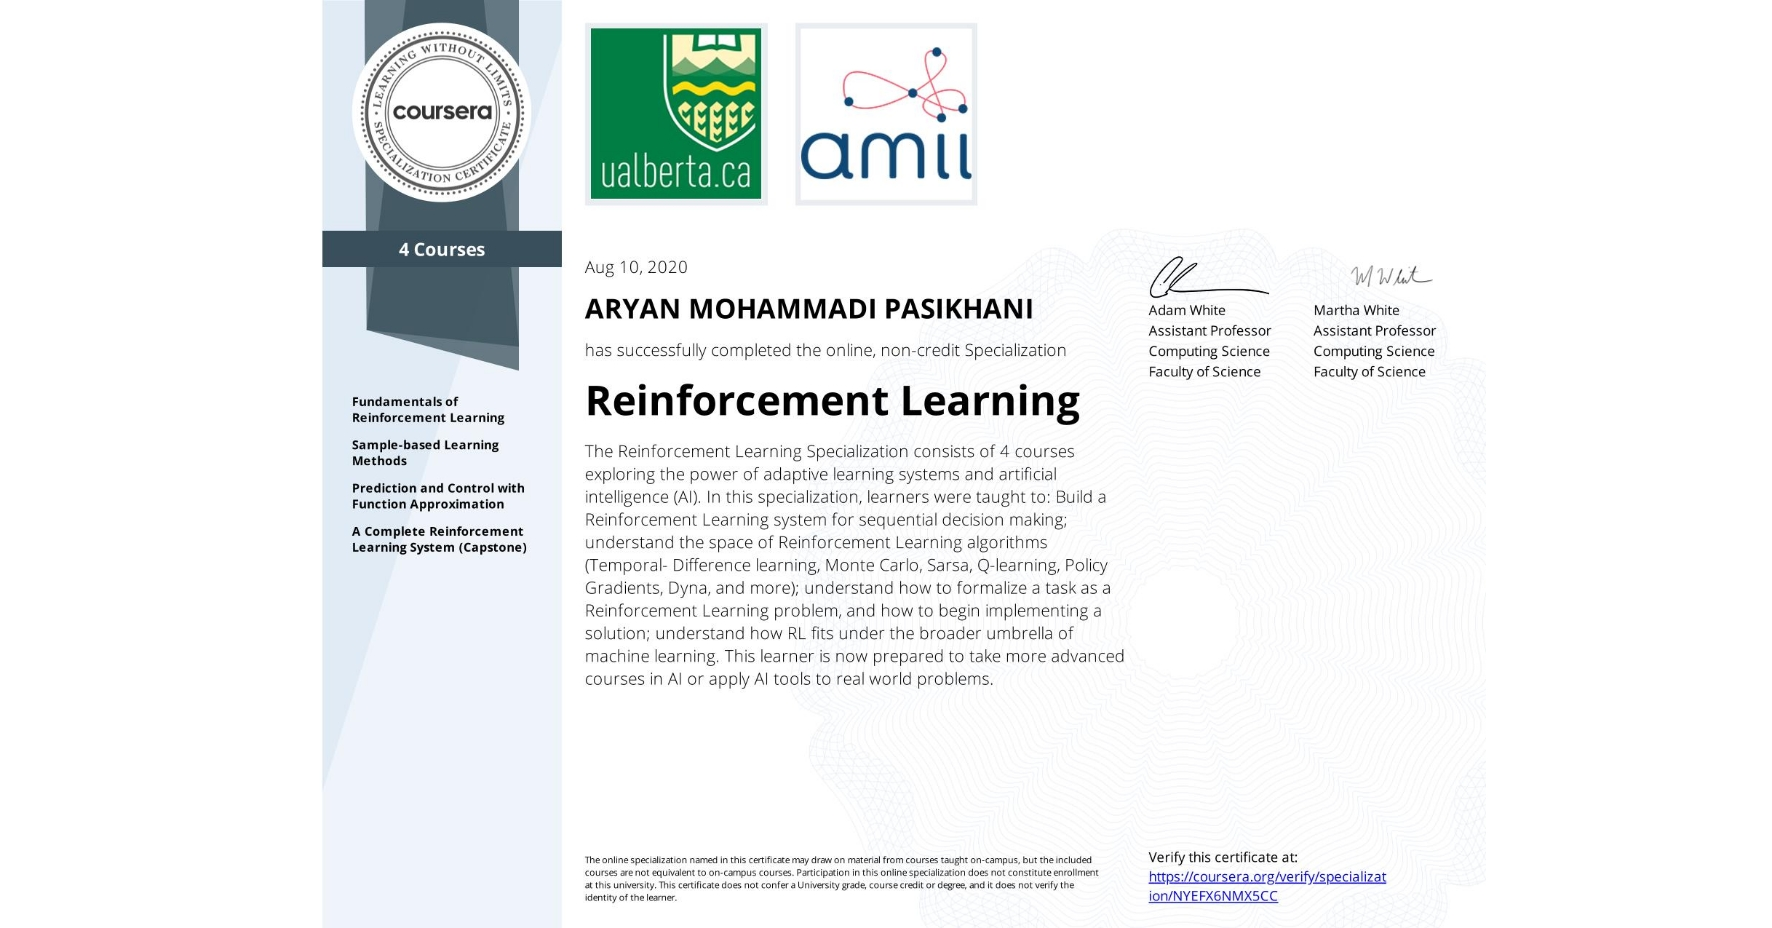 View certificate for ARYAN MOHAMMADI PASIKHANI, Reinforcement Learning, offered through Coursera. The Reinforcement Learning Specialization consists of 4 courses exploring the power of adaptive learning systems and artificial intelligence (AI).  In this specialization, learners were taught to:  Build a Reinforcement Learning system for sequential decision making; understand the space of Reinforcement Learning algorithms (Temporal- Difference learning, Monte Carlo, Sarsa, Q-learning, Policy Gradients, Dyna, and more); understand how to formalize a task as a Reinforcement Learning problem, and how to begin implementing a solution; understand how RL fits under the broader umbrella of machine learning.  This learner is now prepared to take more advanced courses in AI or apply AI tools to real world problems.